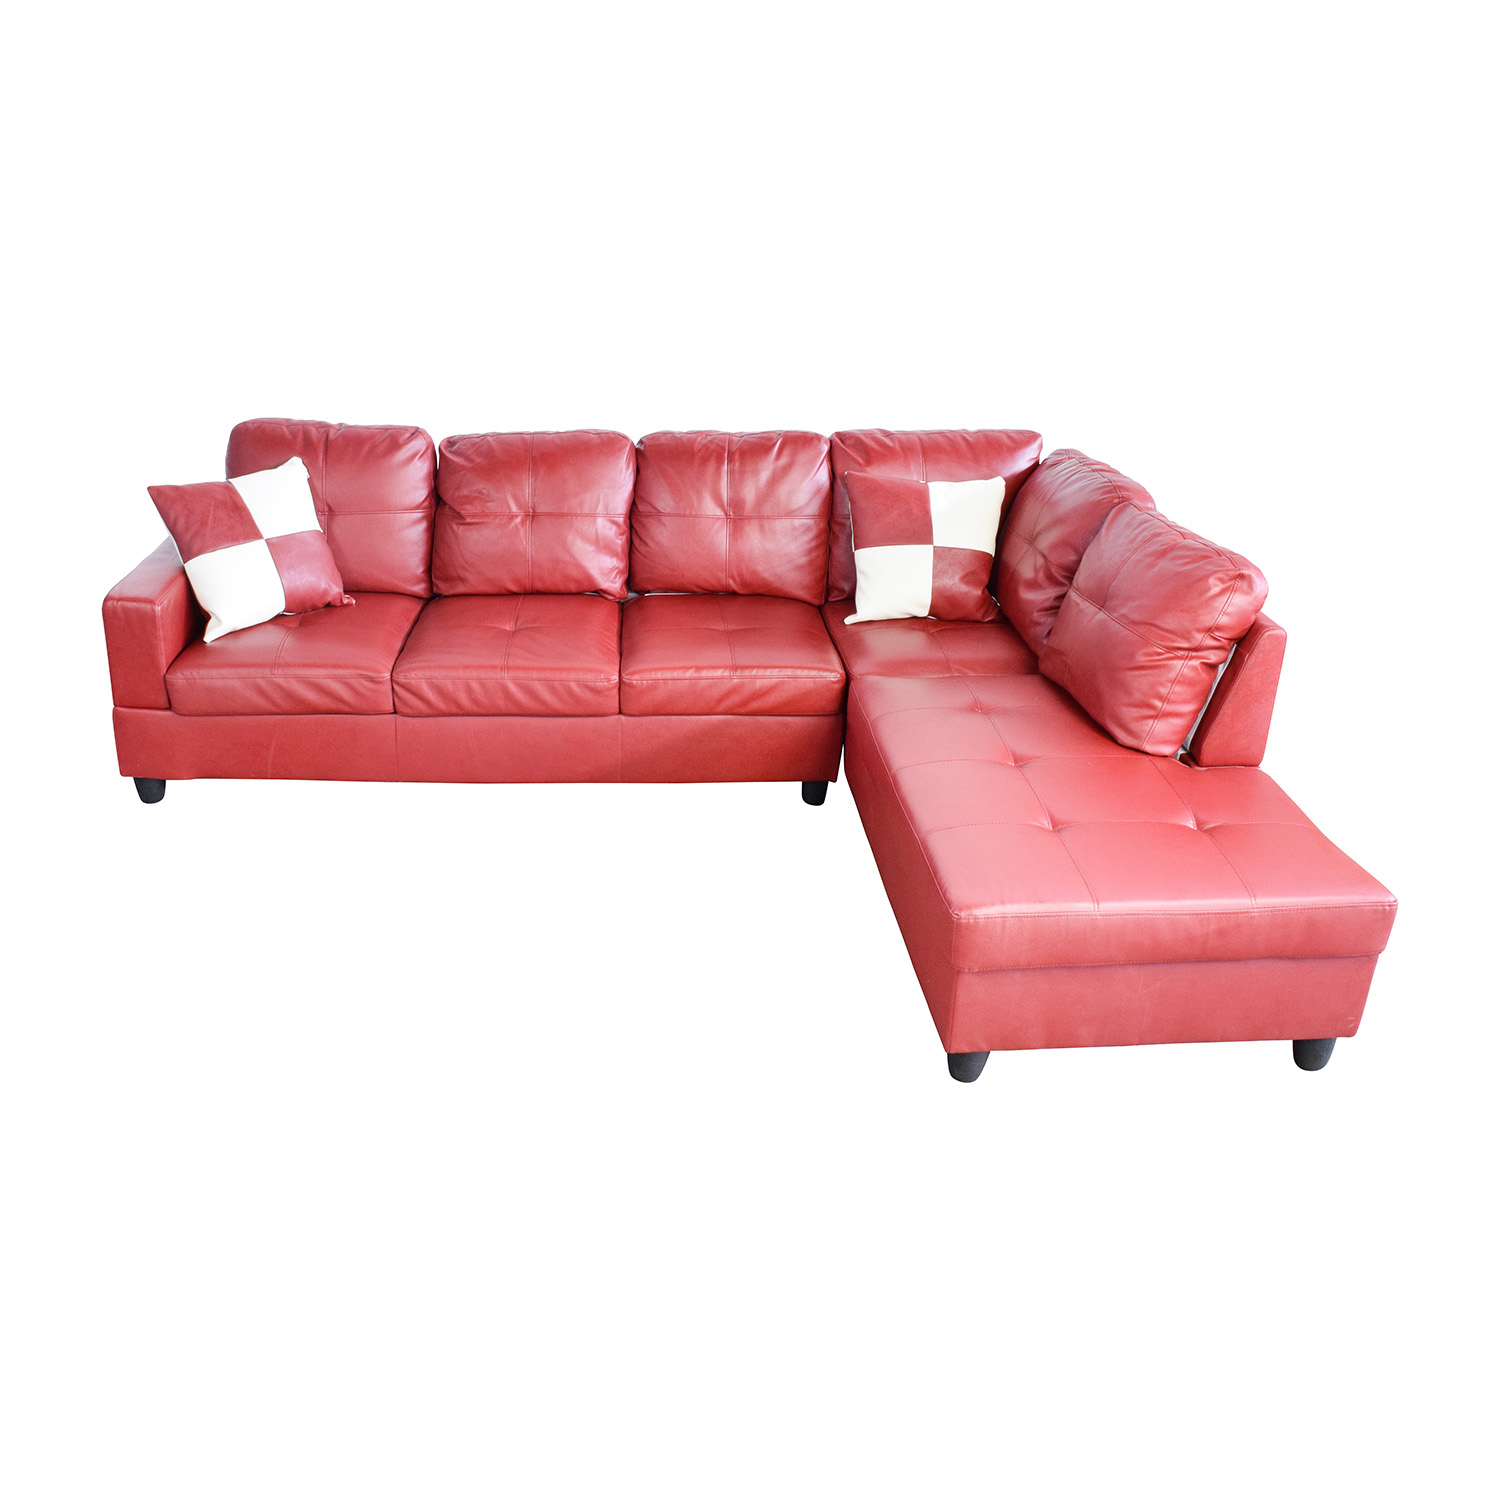 Wondrous 76 Off Beverly Furniture Beverly Furniture Red Faux Leather Sectional Sofas Pabps2019 Chair Design Images Pabps2019Com